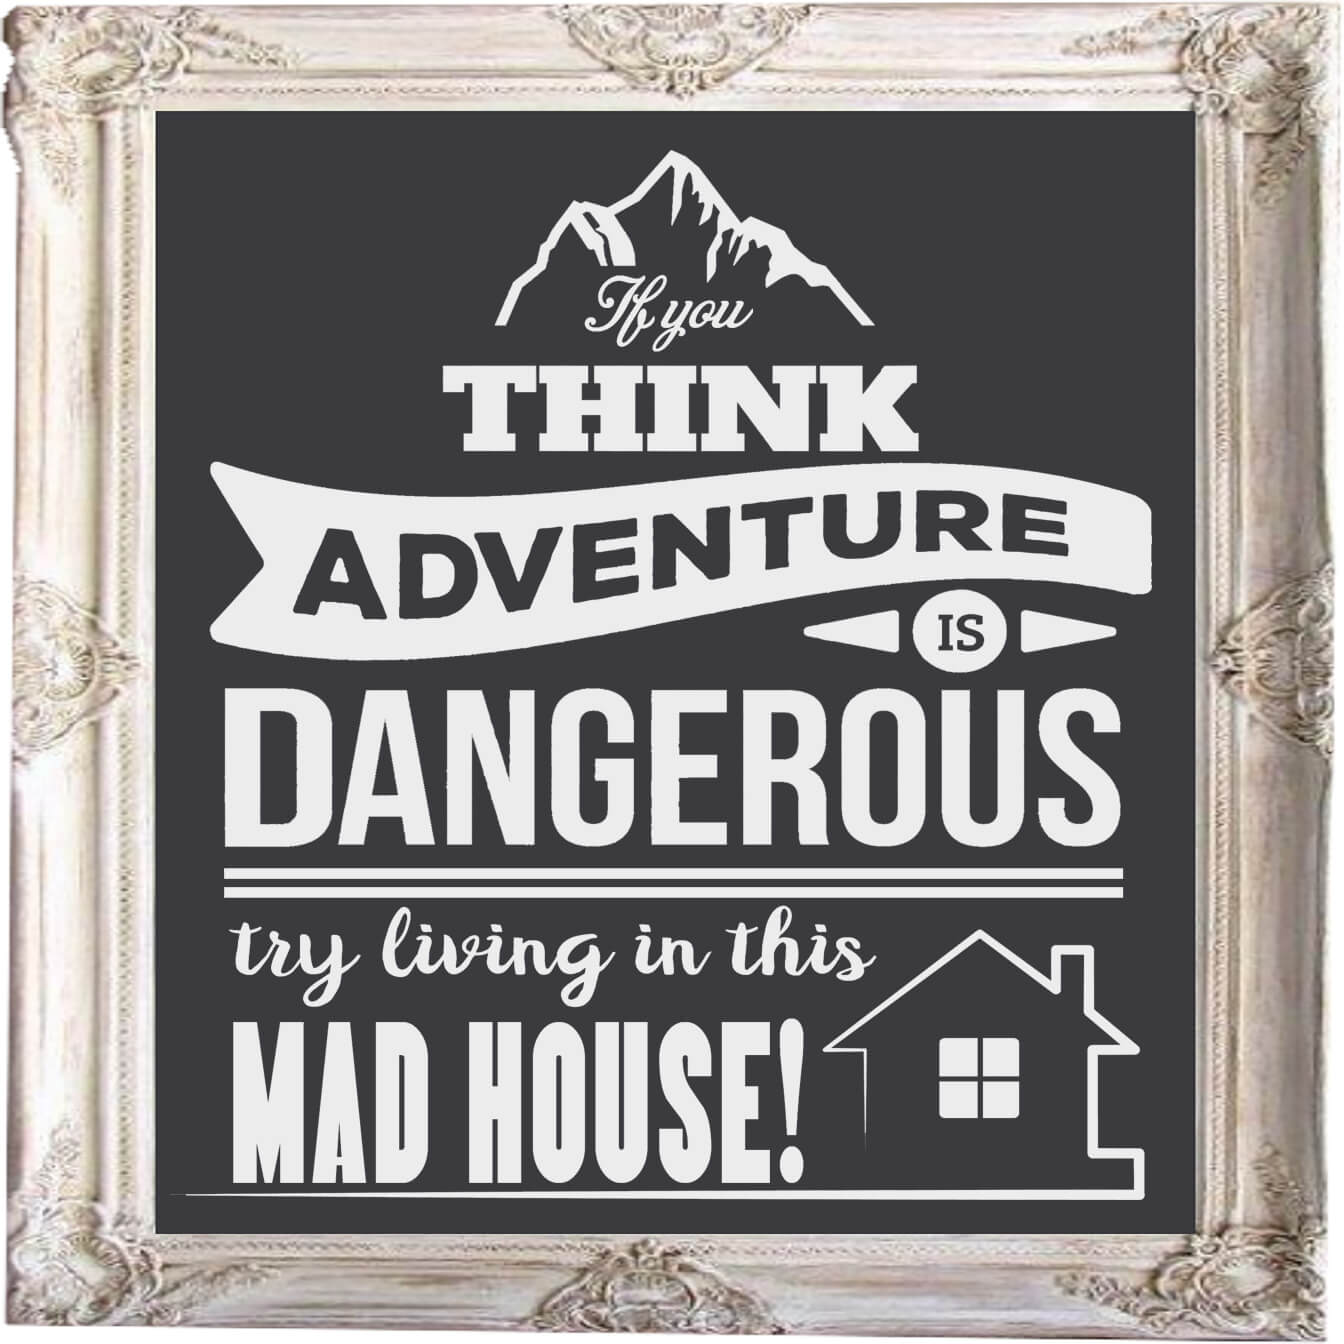 Free If you think Adventure is Dangerous SVG File